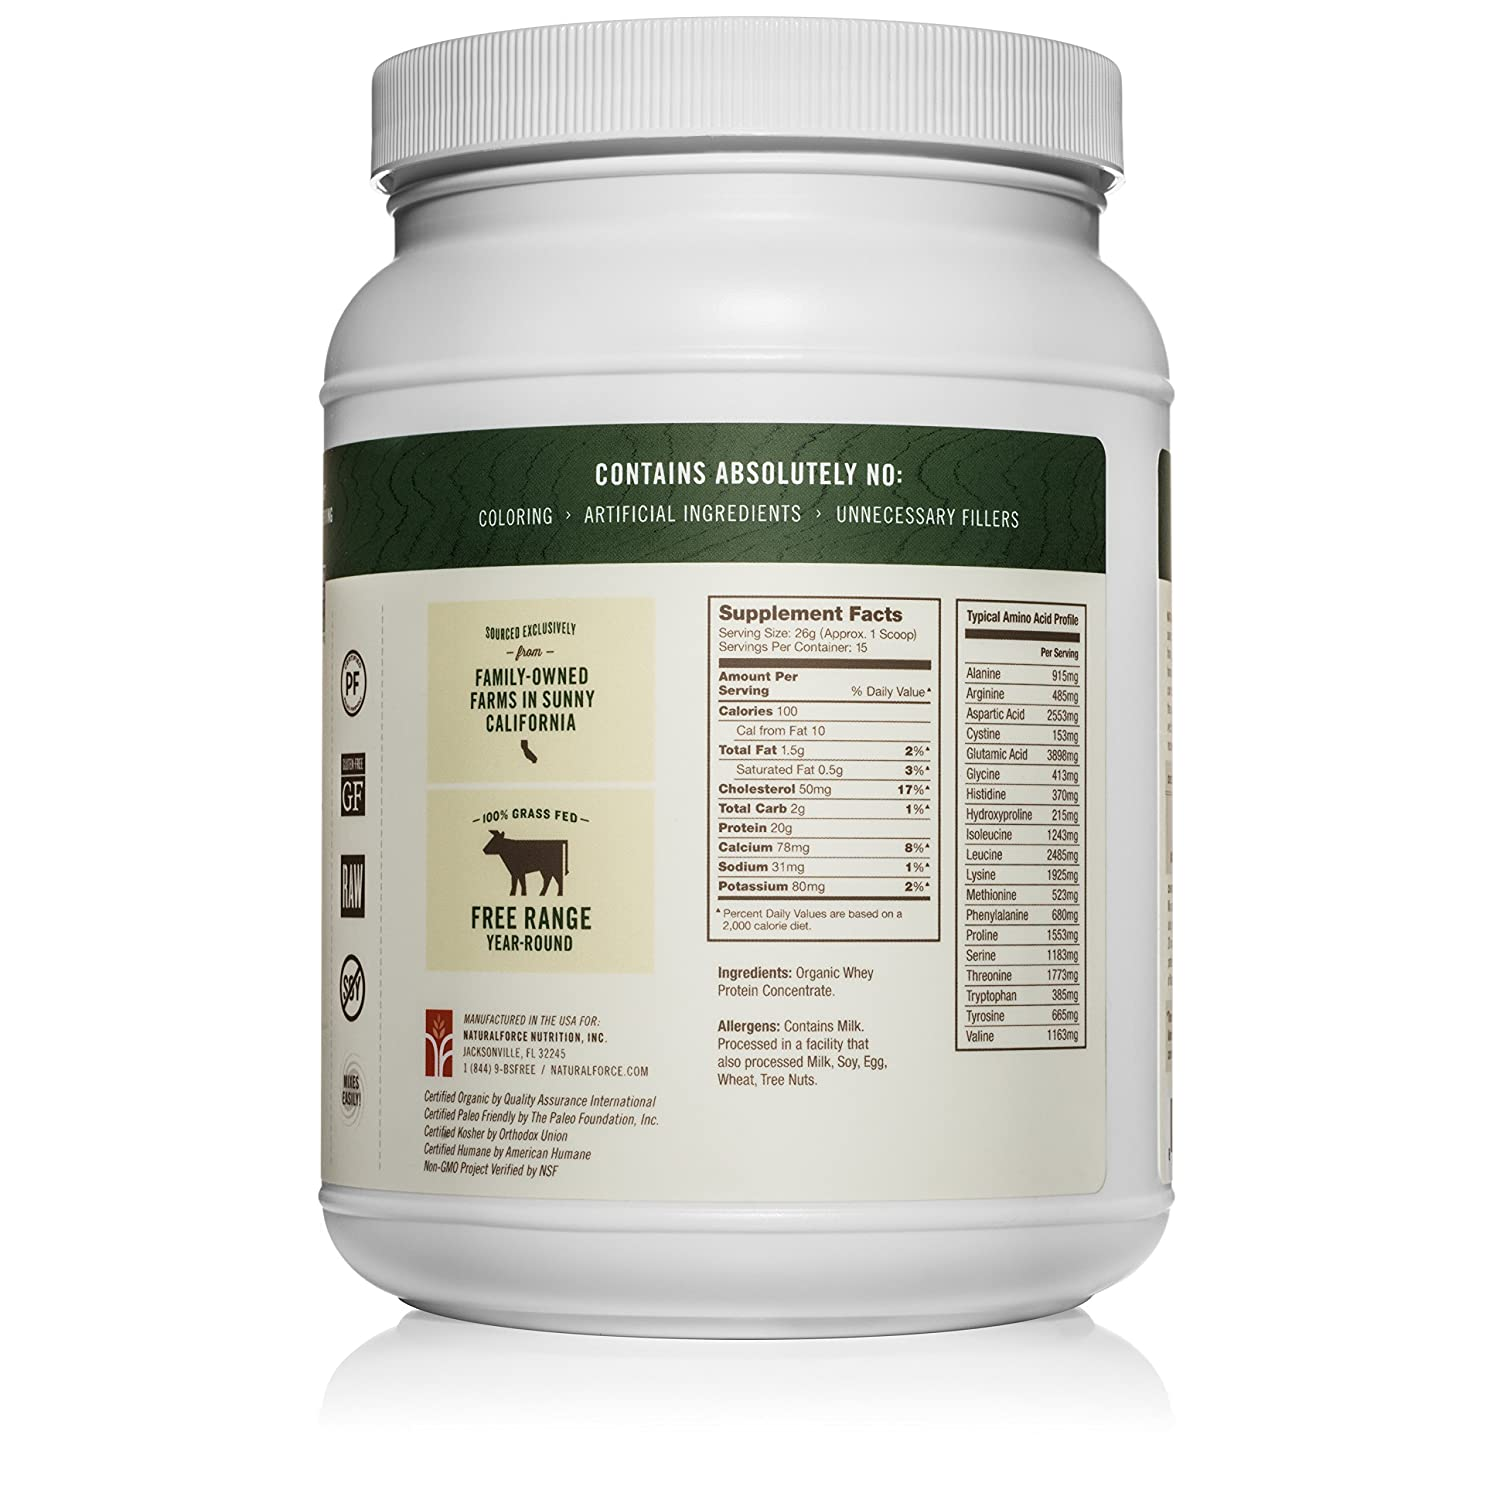 Natural Force Unflavored Organic Whey Protein Powder *UNSWEETENED* Grass Fed Whey from California Farms Pure Organic Whey, Keto, Gluten Free, Natural Whey Protein, 13.76 oz.